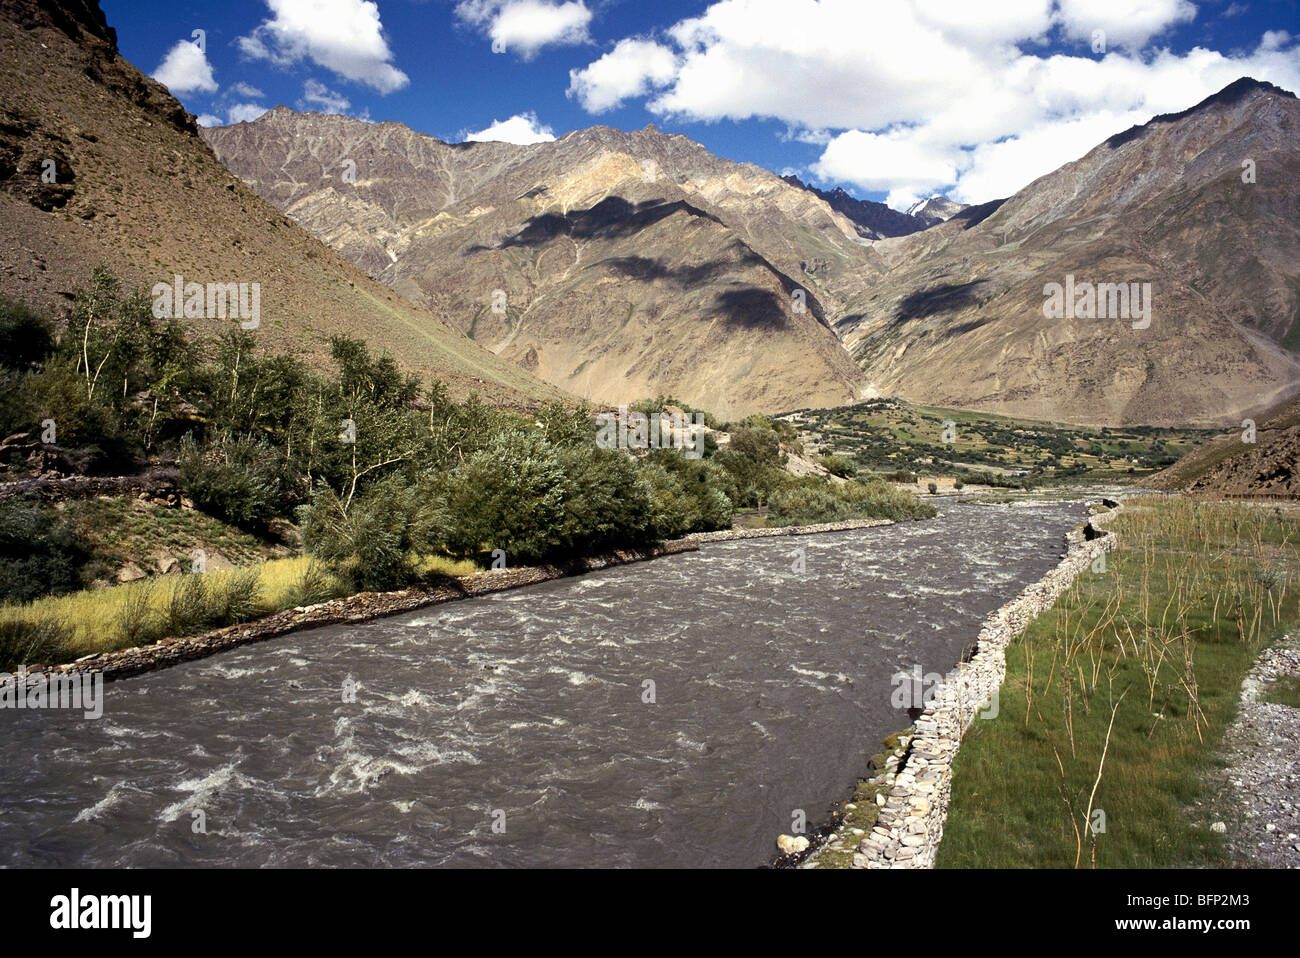 The Suru River a tributary of Indus River is river in Kargil